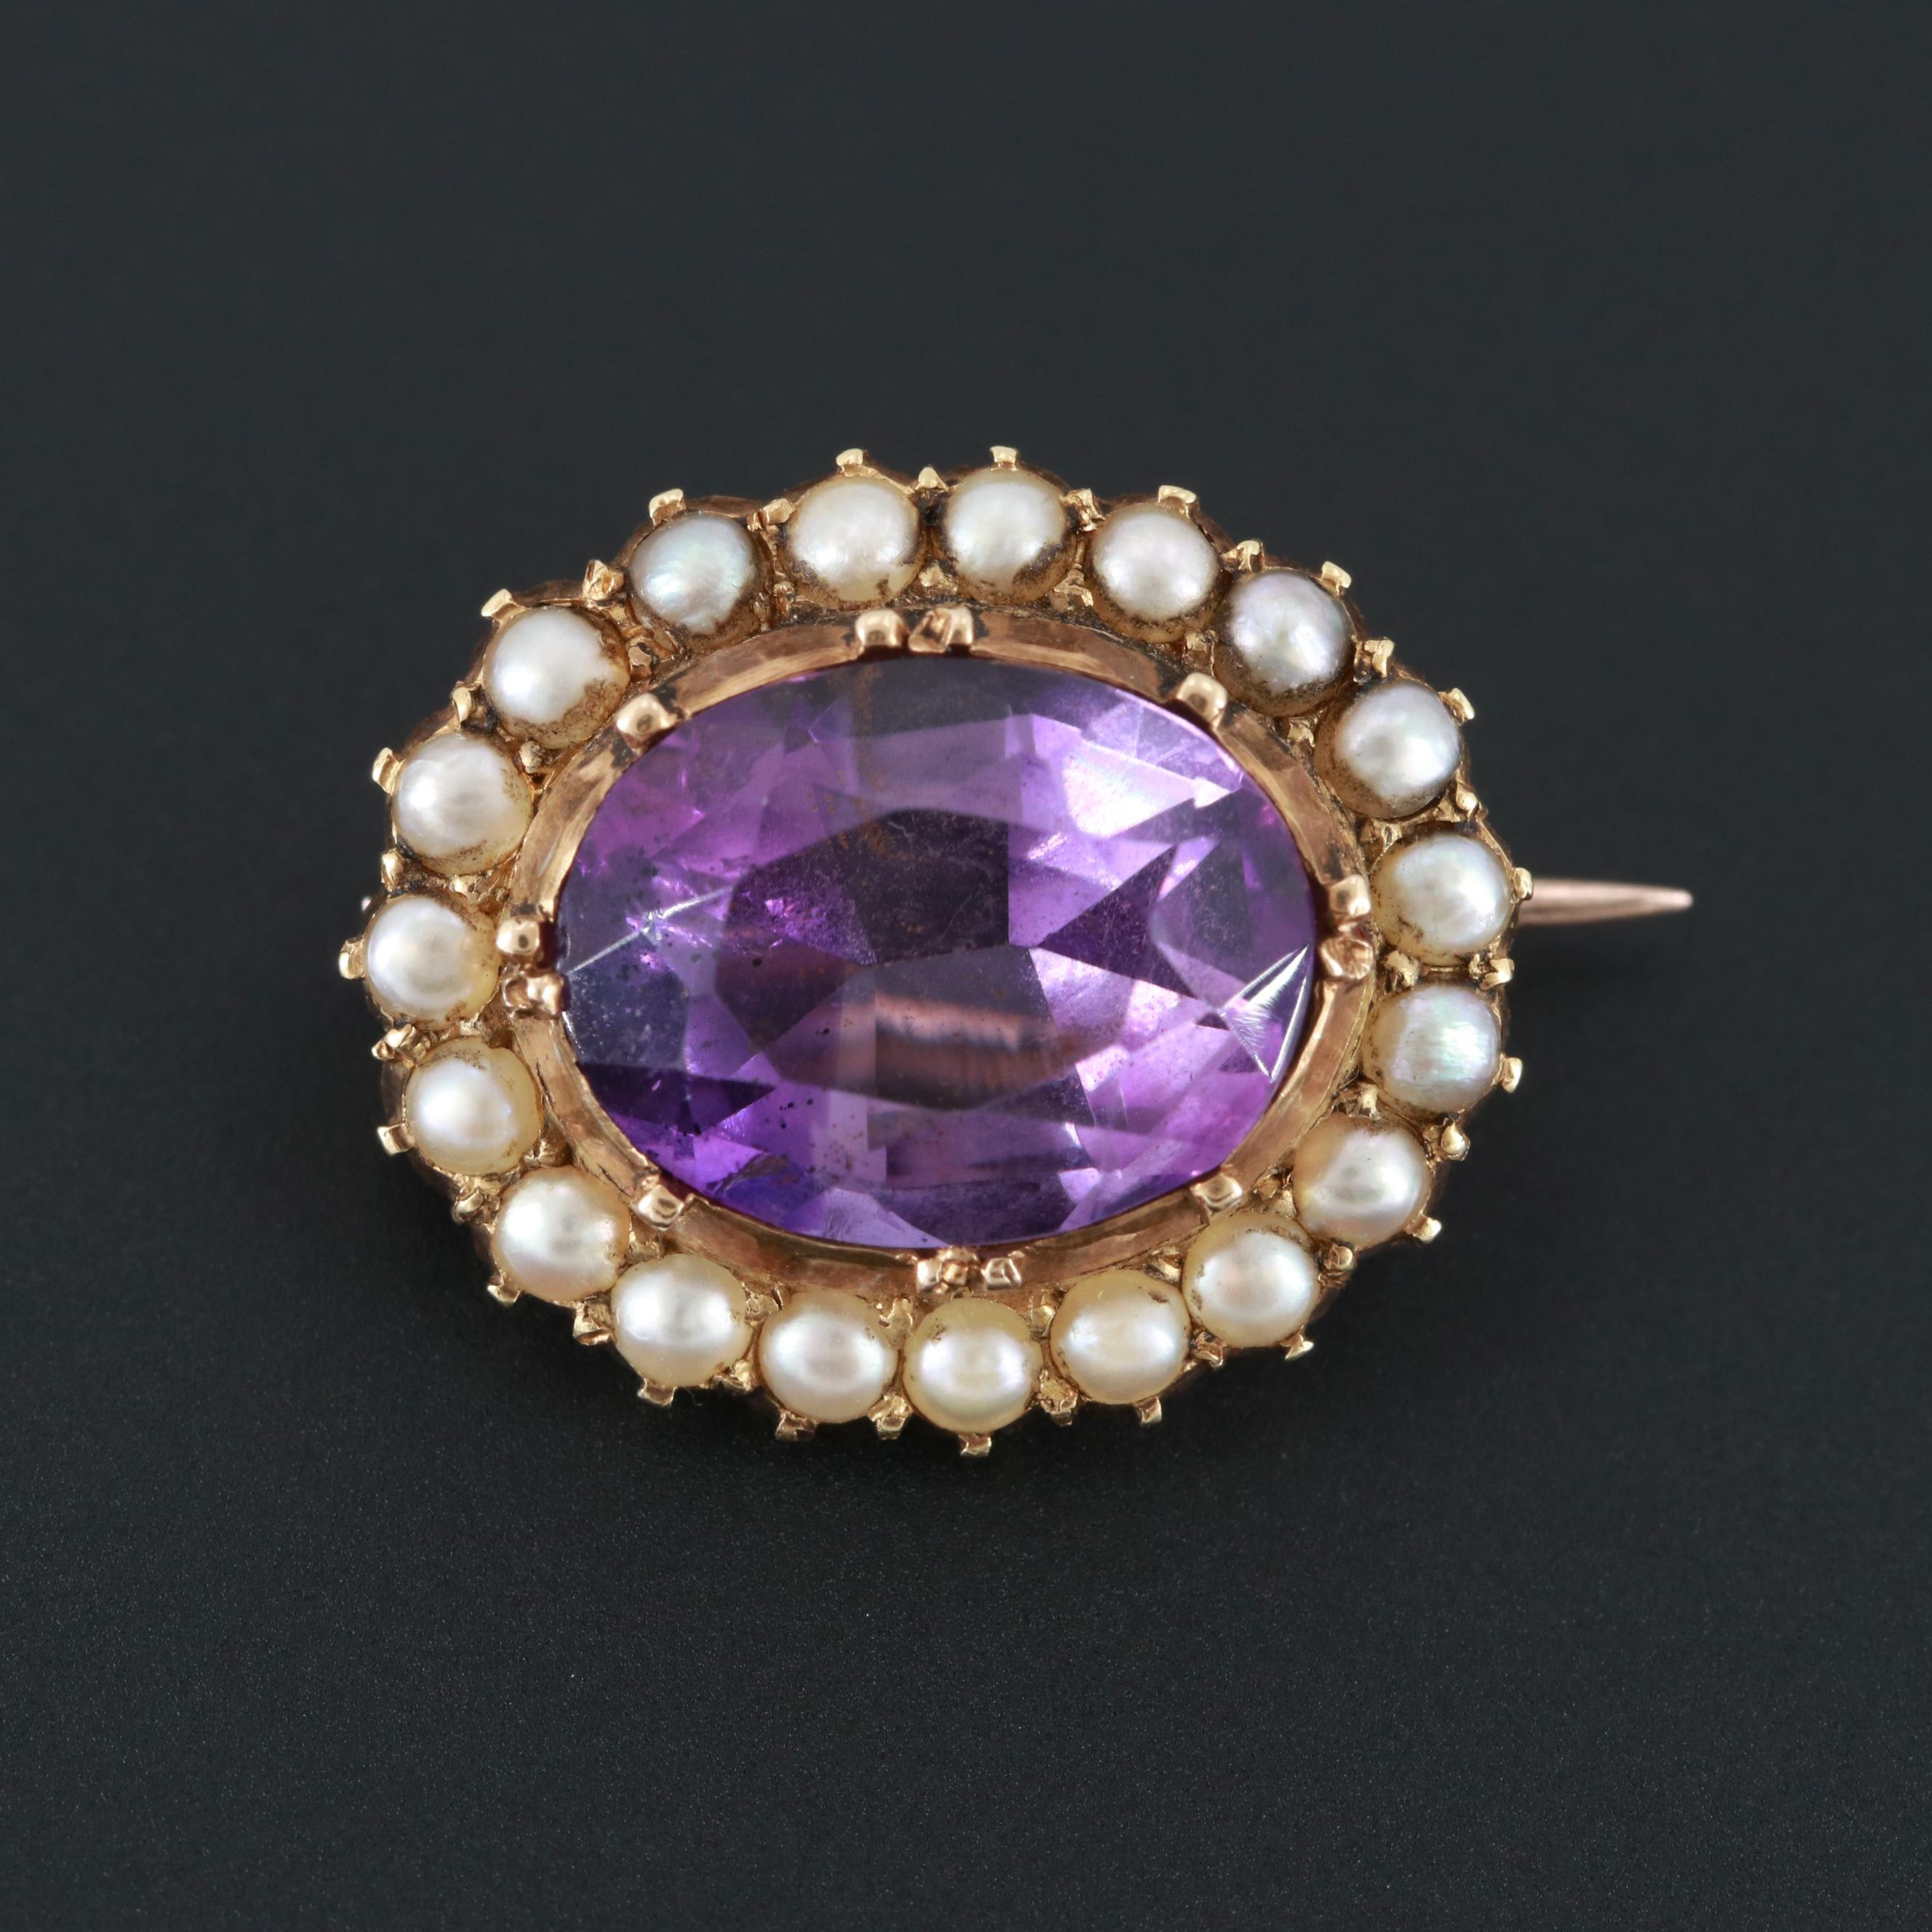 Victorian 15K Yellow Gold Amethyst and Cultured Pearl Converter Brooch